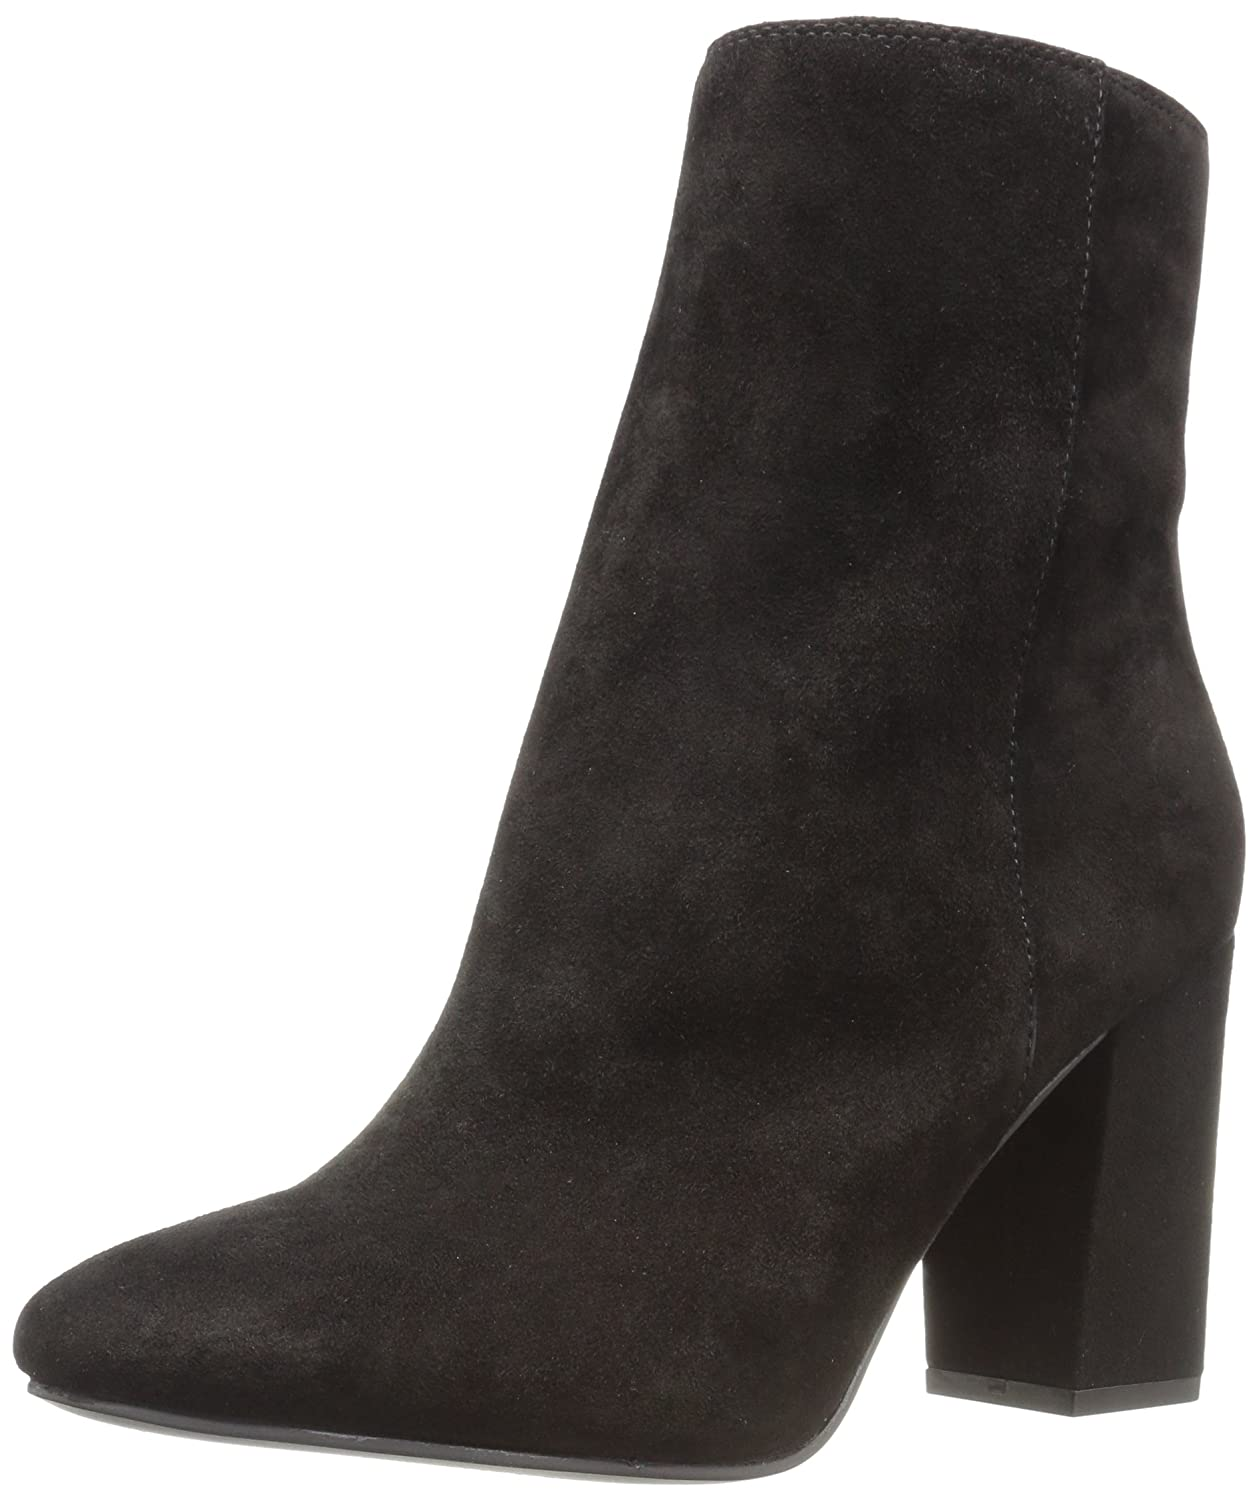 Lucky Brand Women's Wesson Ankle Boot B072DYGL4V 9.5 M US|Black